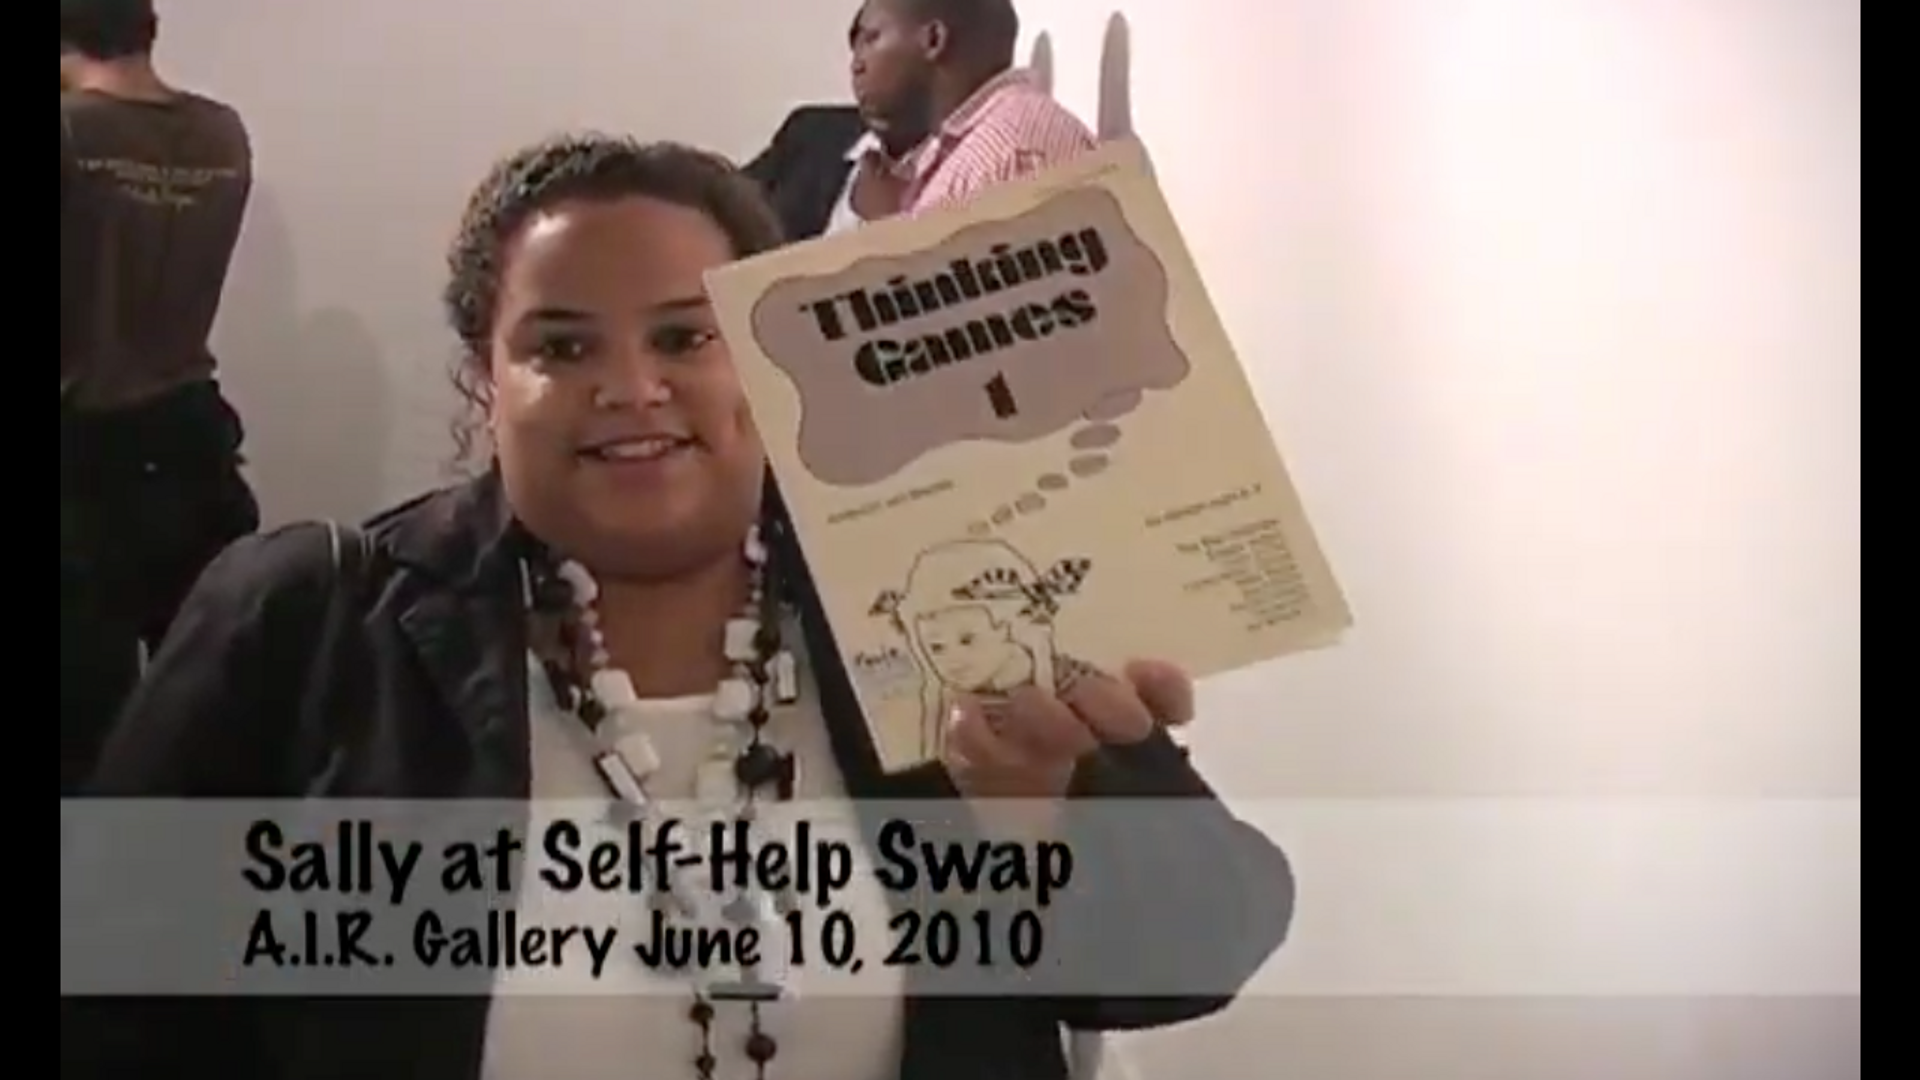 2010, Sally Hyppolite at Self-Help Swap, A.I.R. Gallery, Brooklyn, New York